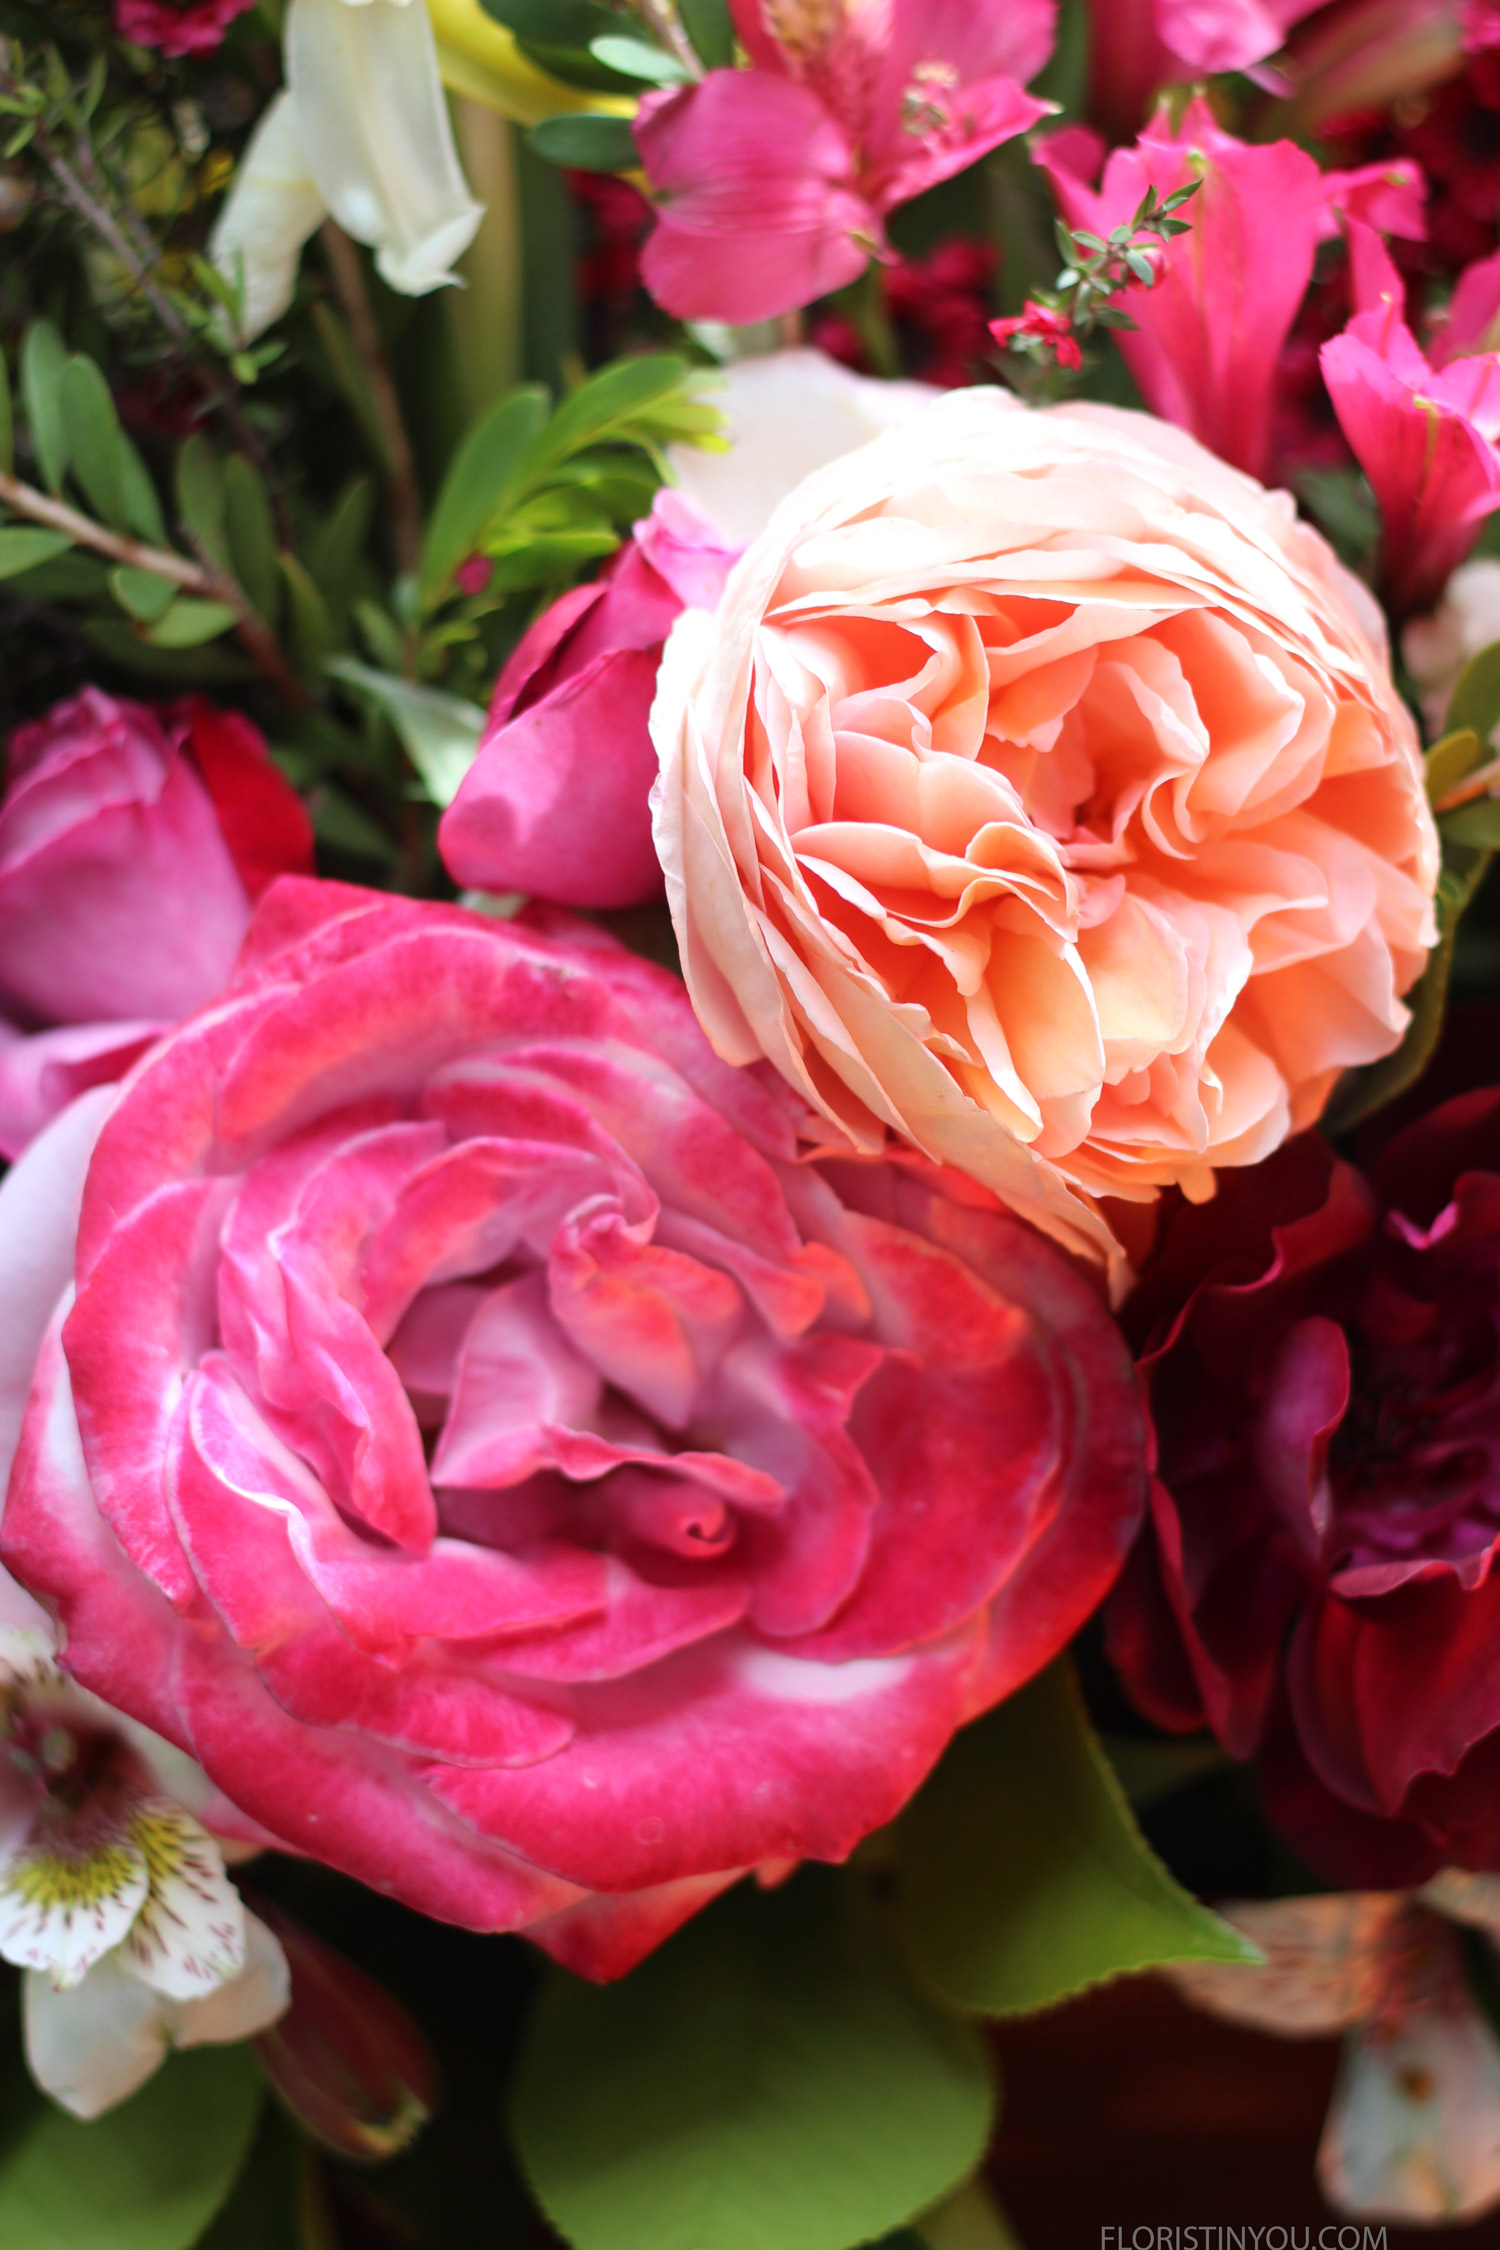 Wow these garden roses are show stoppers.